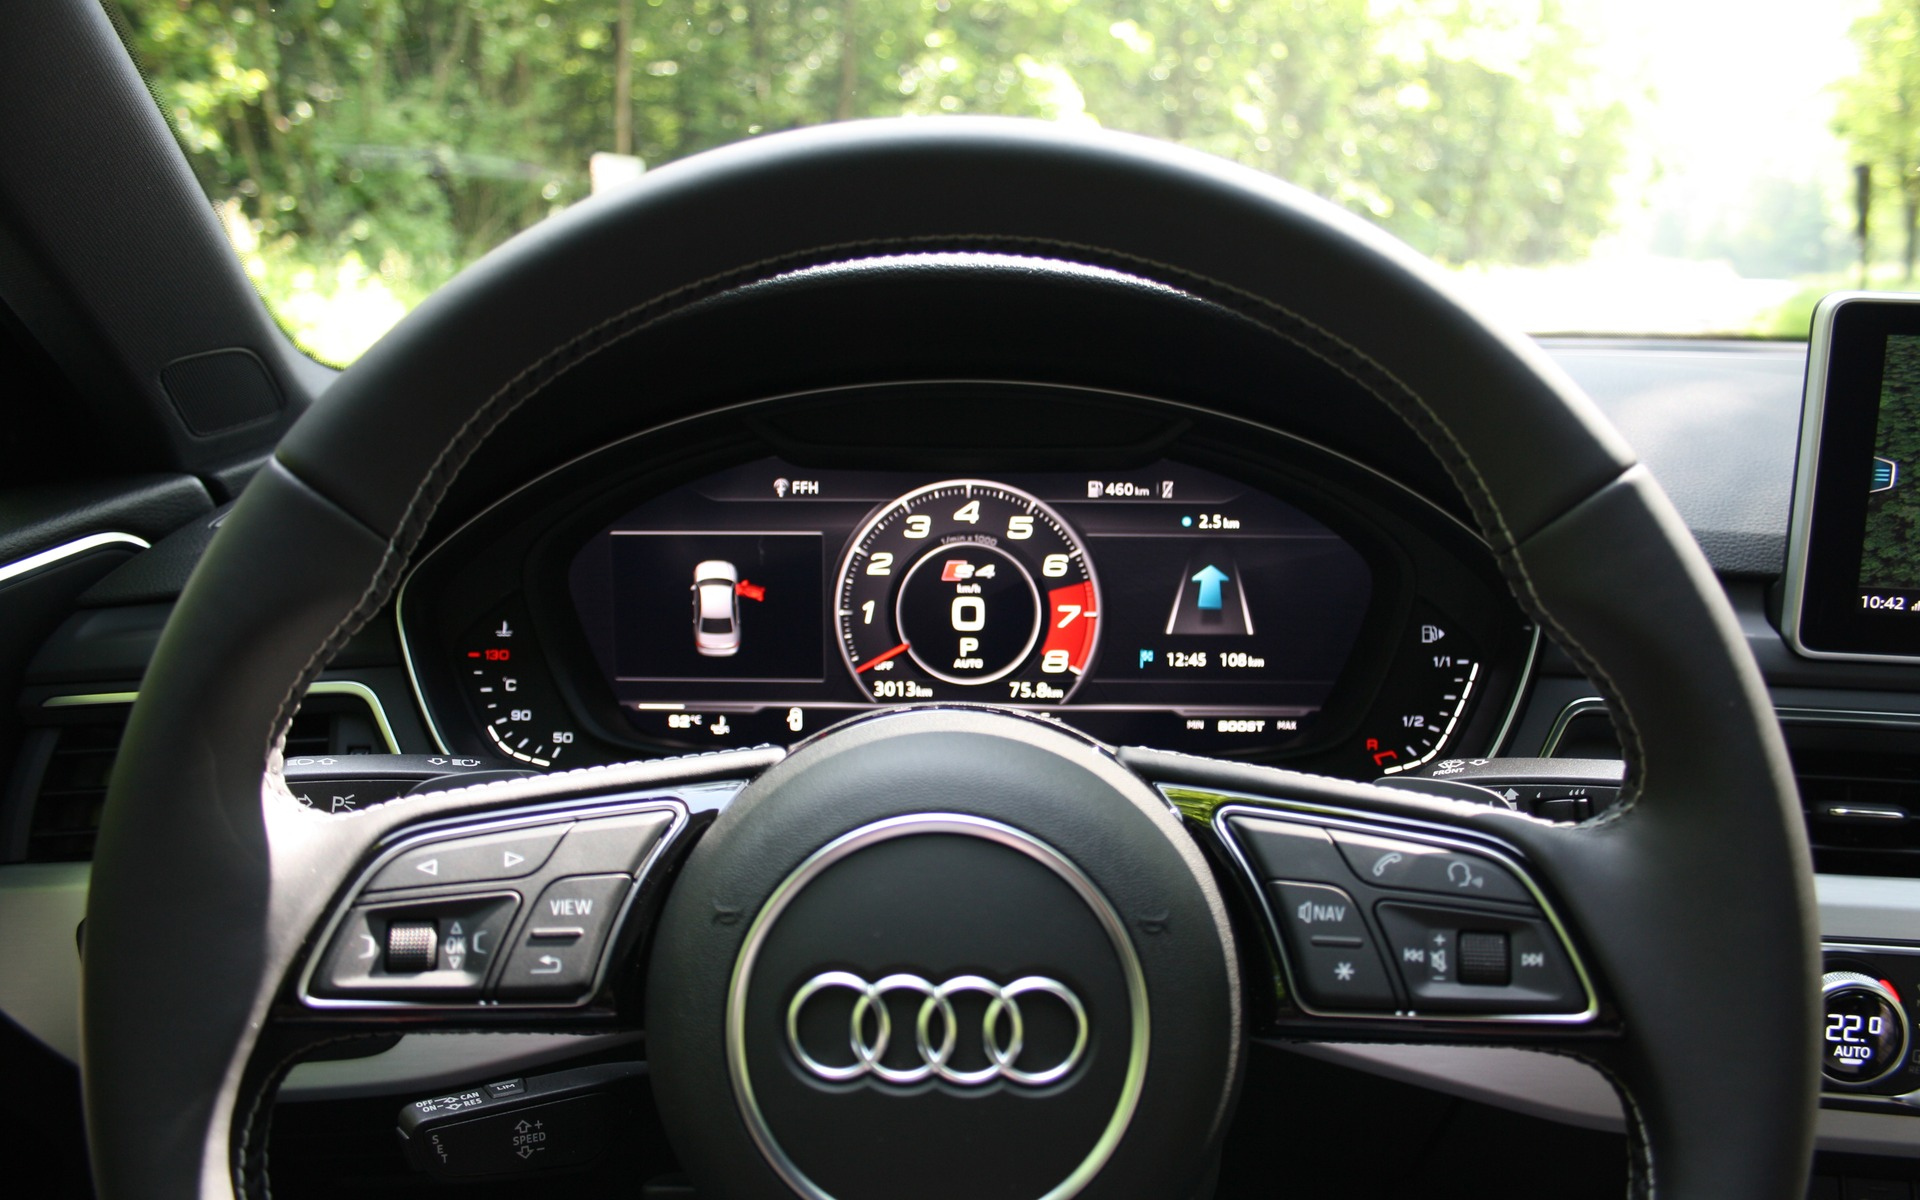 2018 Audi S4 The Docile Beast 9 17